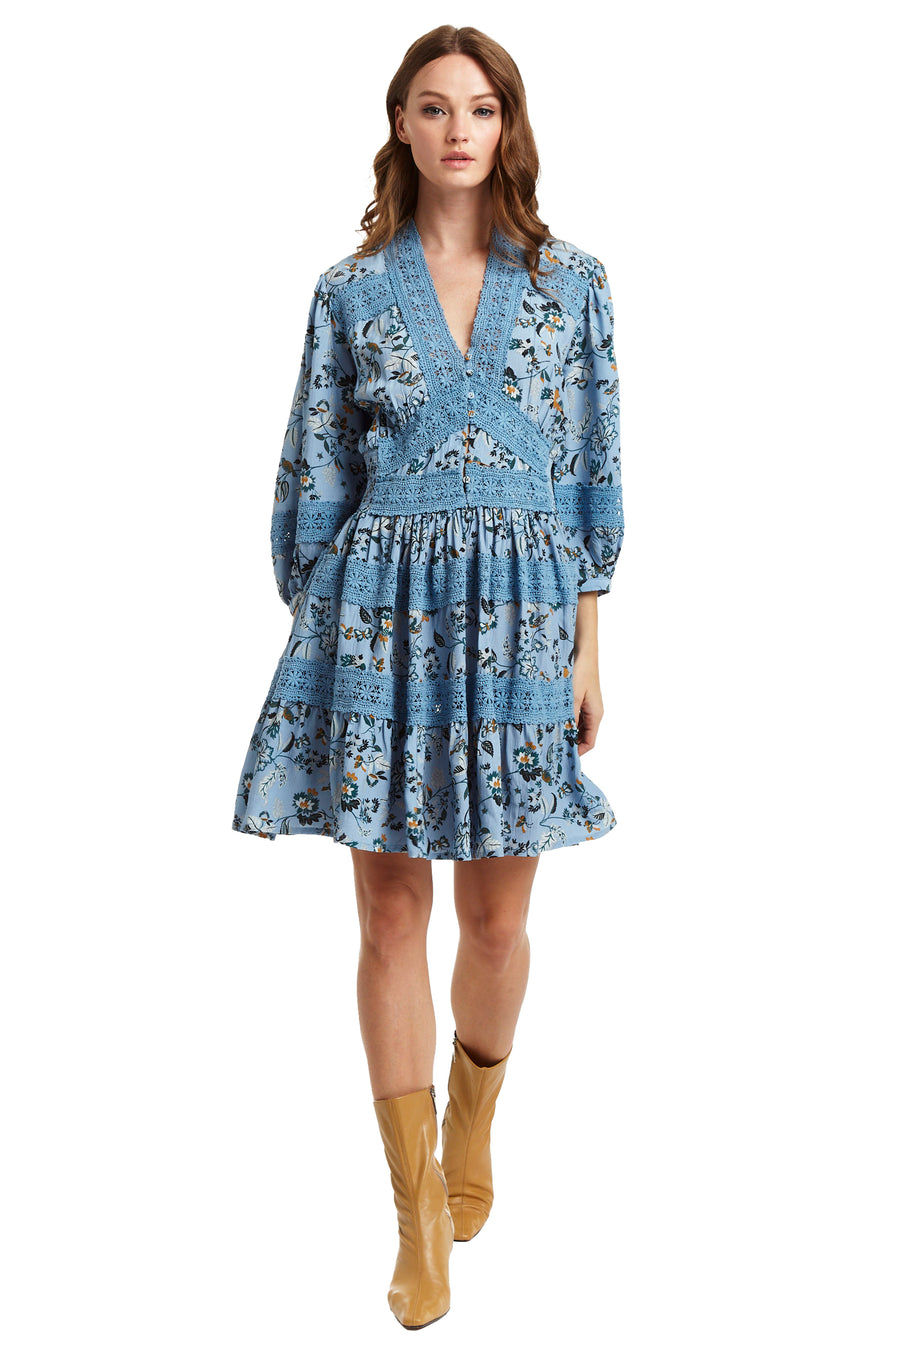 Reims Dress - Light Blue Floral